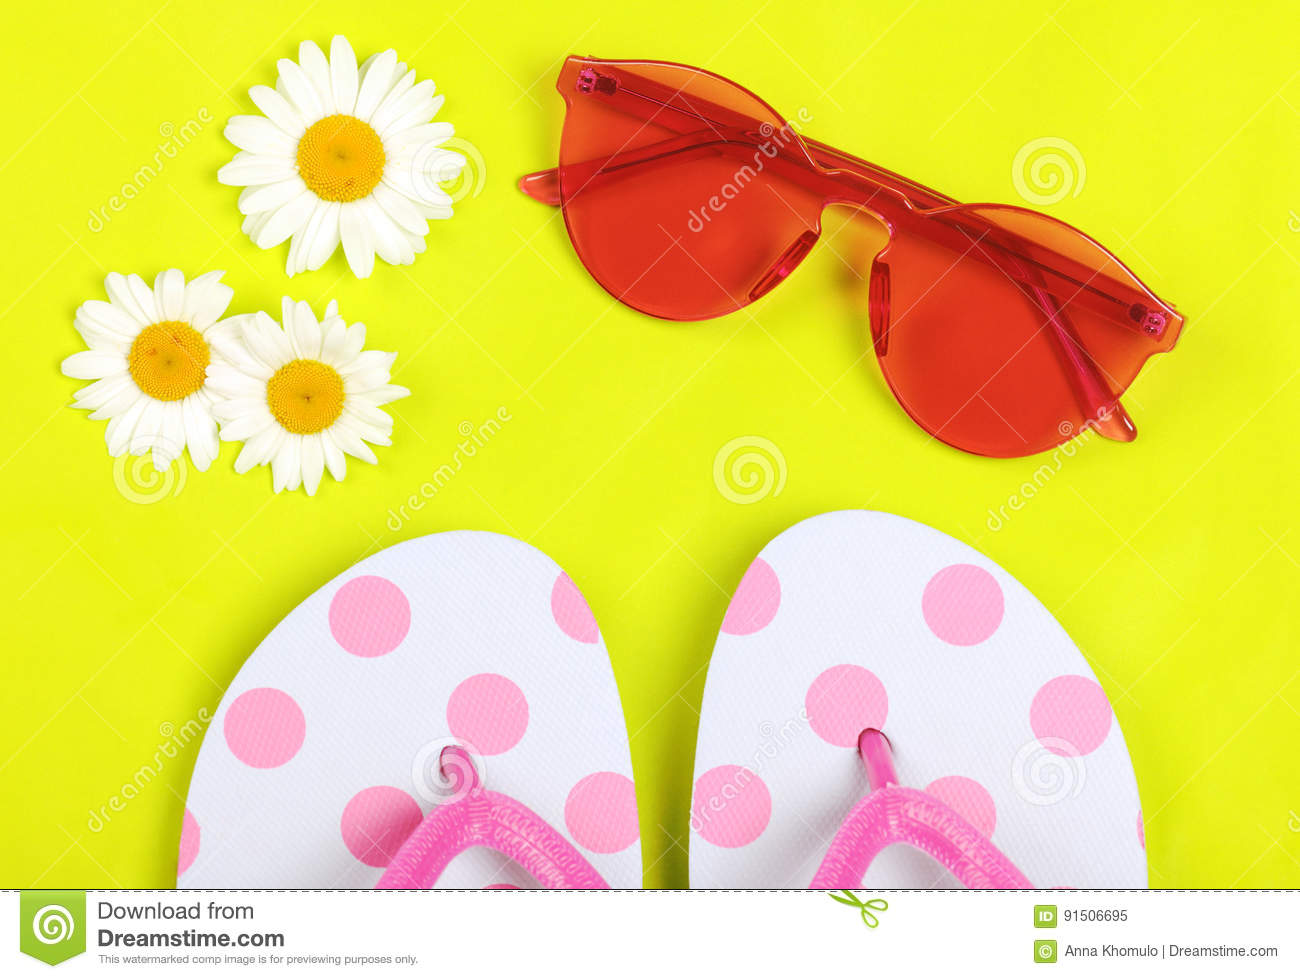 1e7f41582f8 Summer Vacation Accessories Stock Image - Image of flip